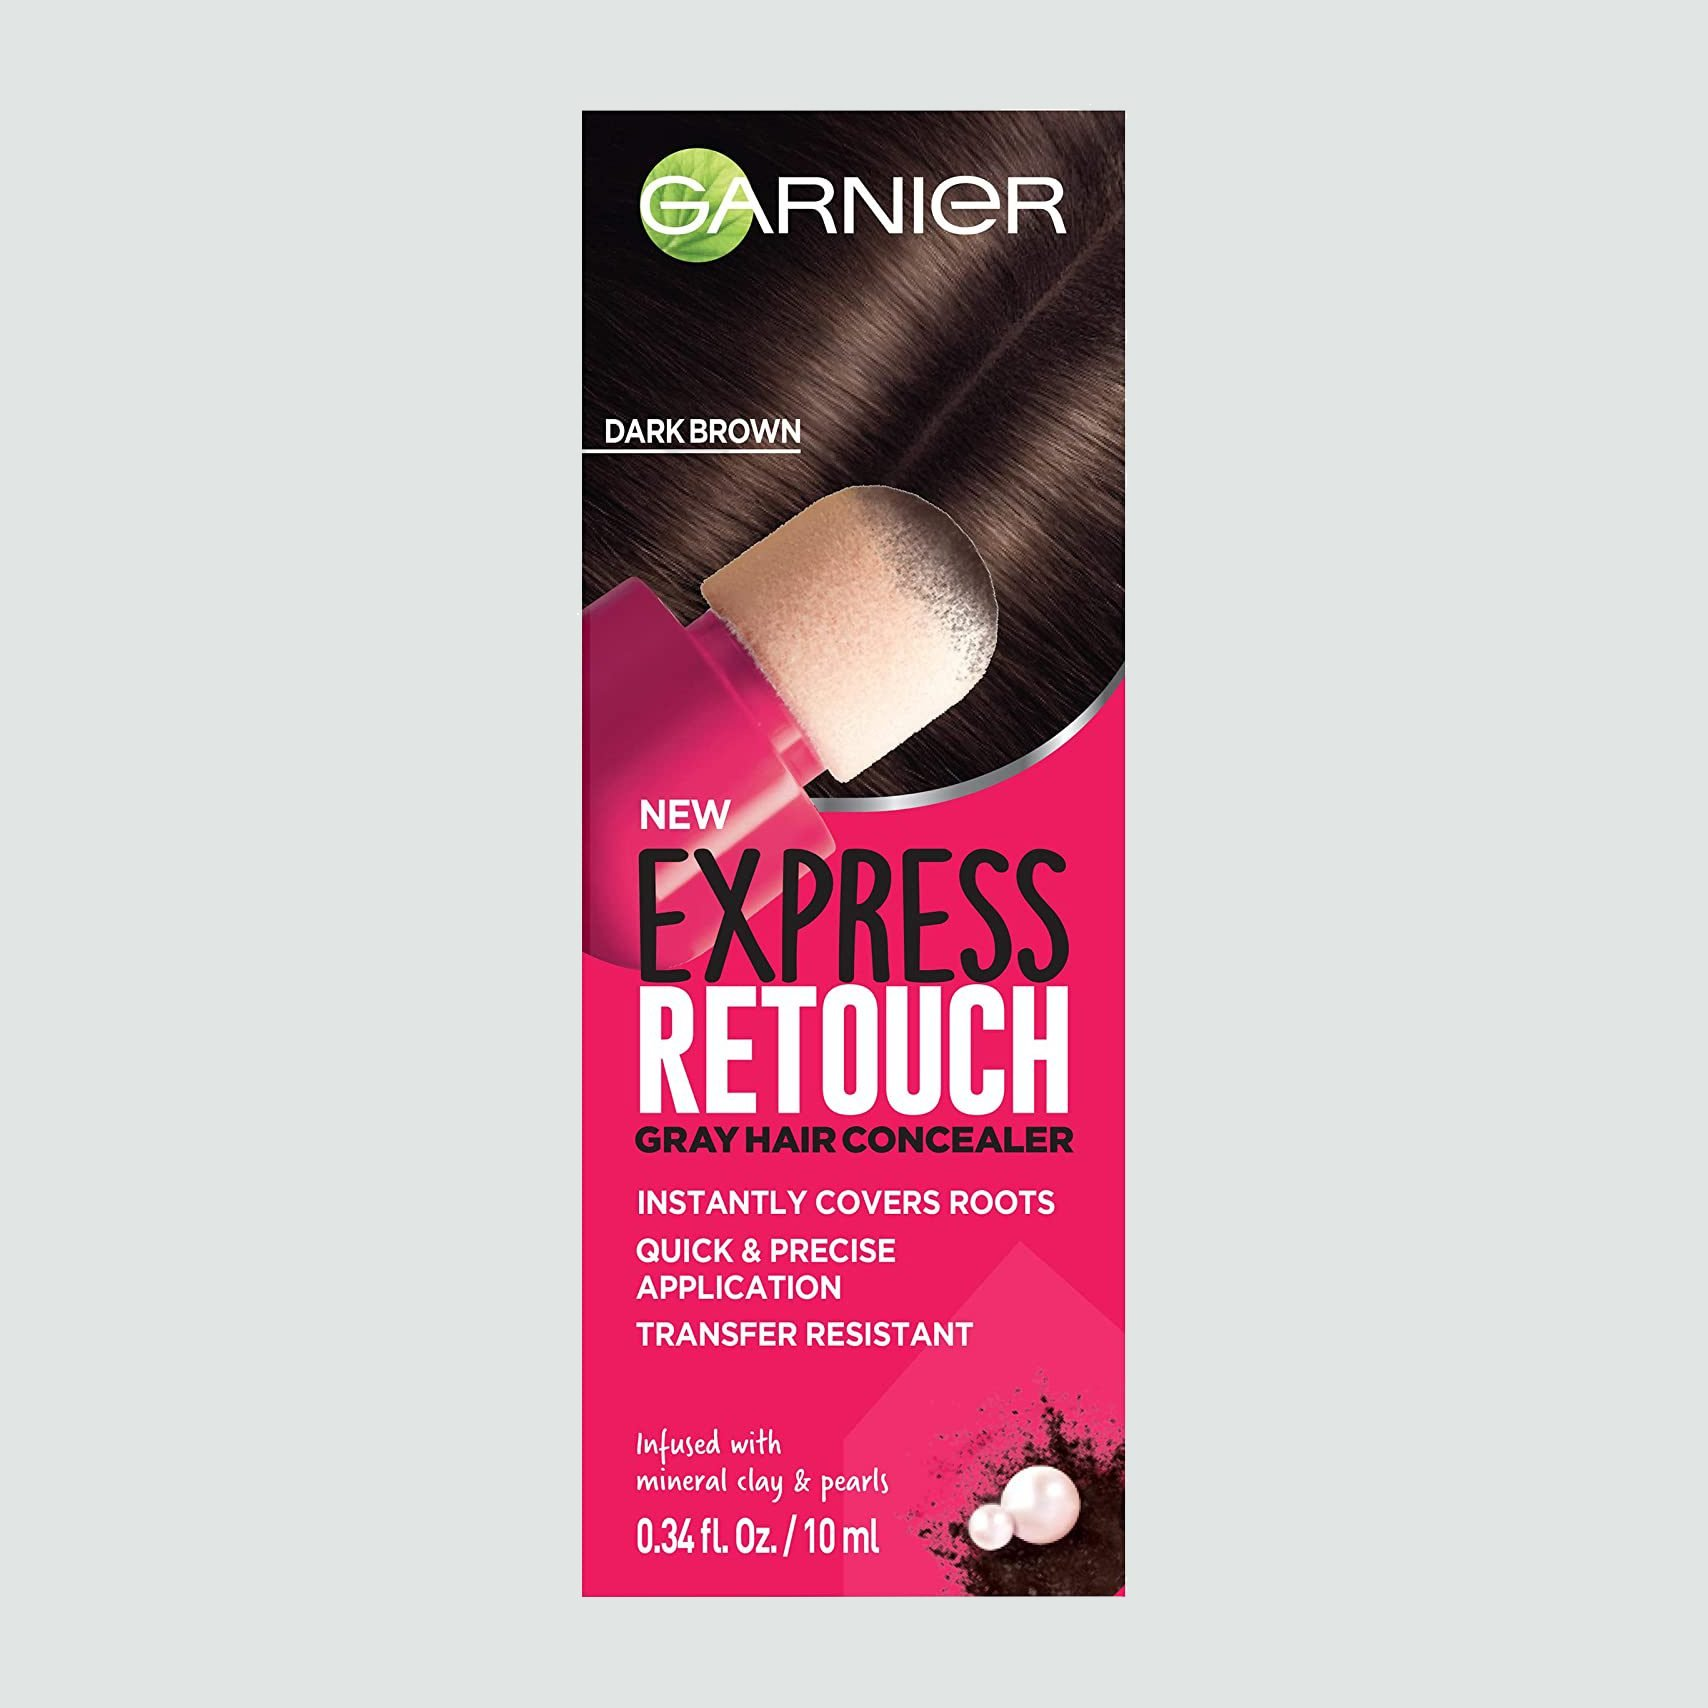 Best bang for your buck: Garnier Express Retouch Gray Hair Concealer